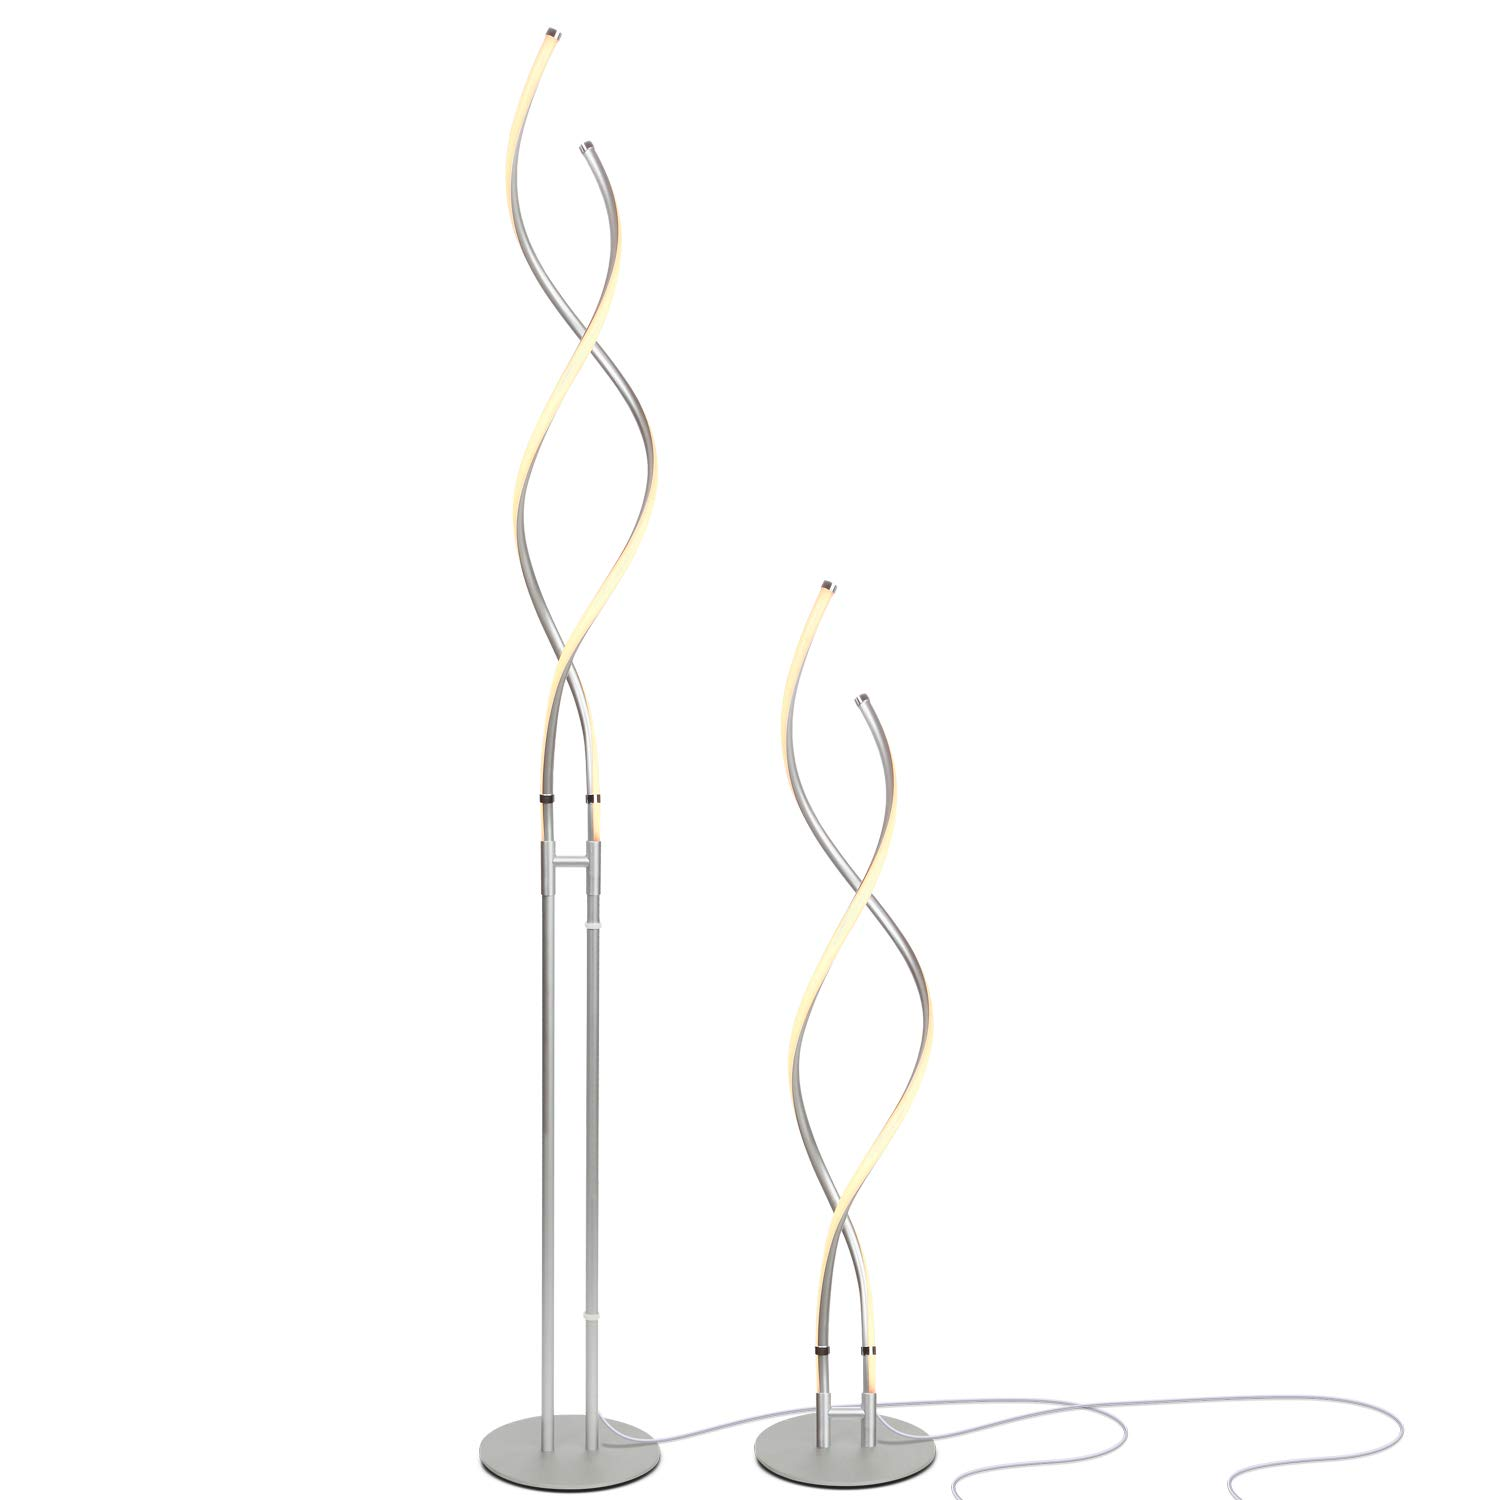 Brightech Embrace – Modern, 40 Inch Tall Lamp for Living Rooms - Adjustable to 66'' LED Floor Lamp – Dimmable, Standing Light for Bedroom, Office – Silver Pole by Brightech (Image #1)